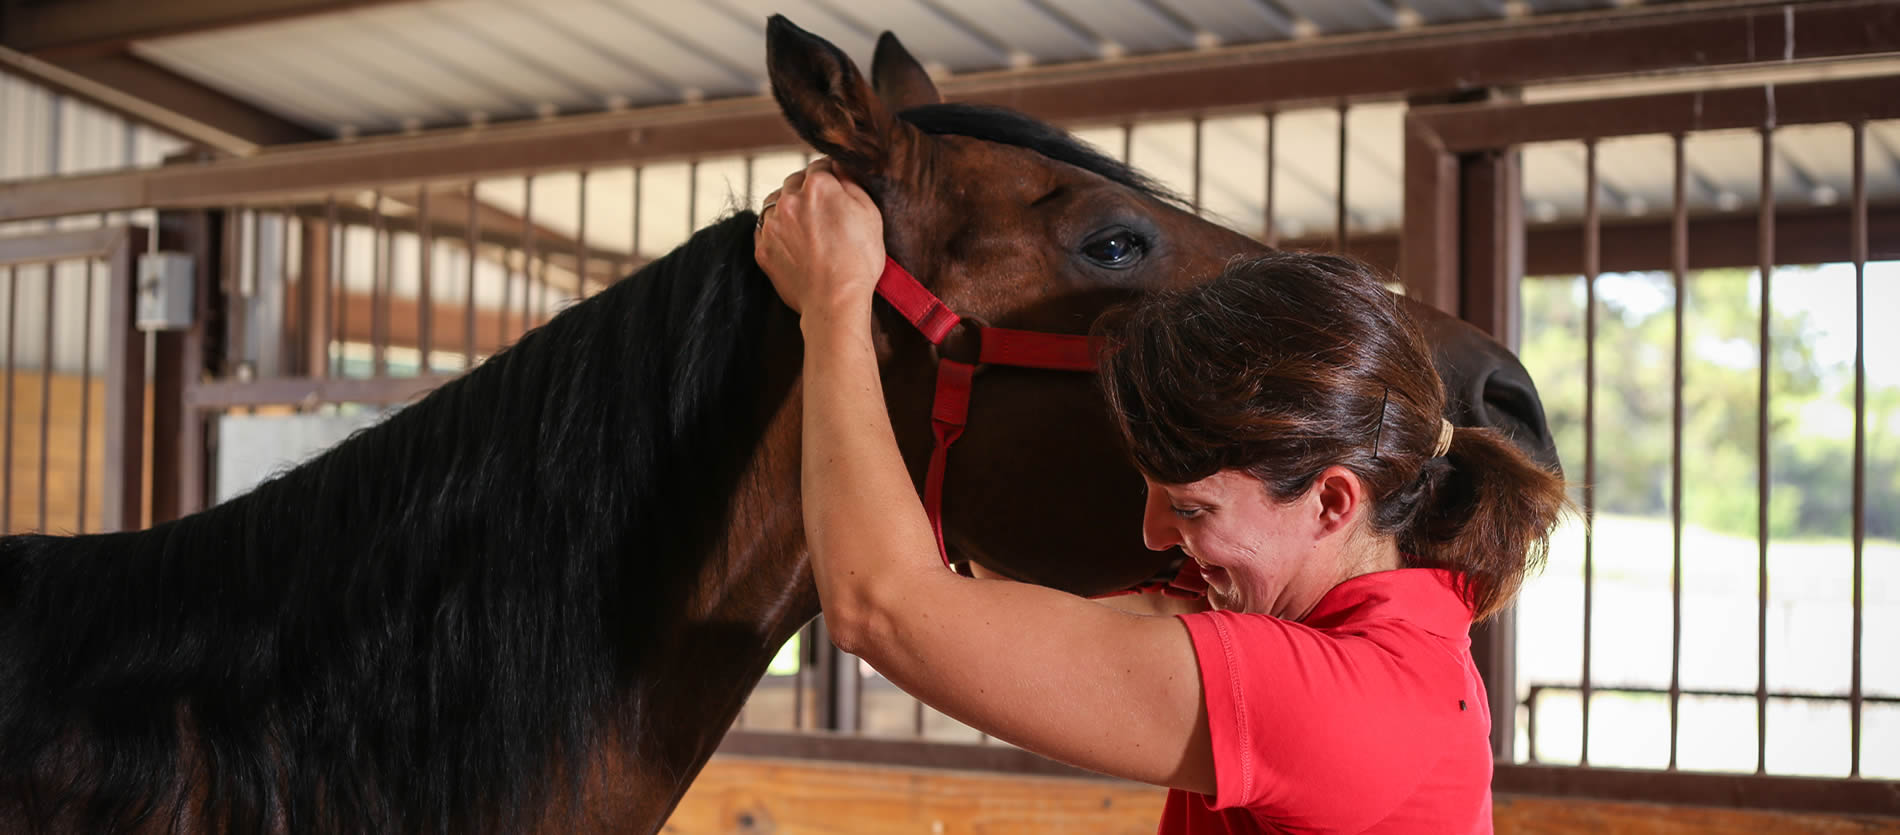 contact texas equine veterinary services jenn boeche